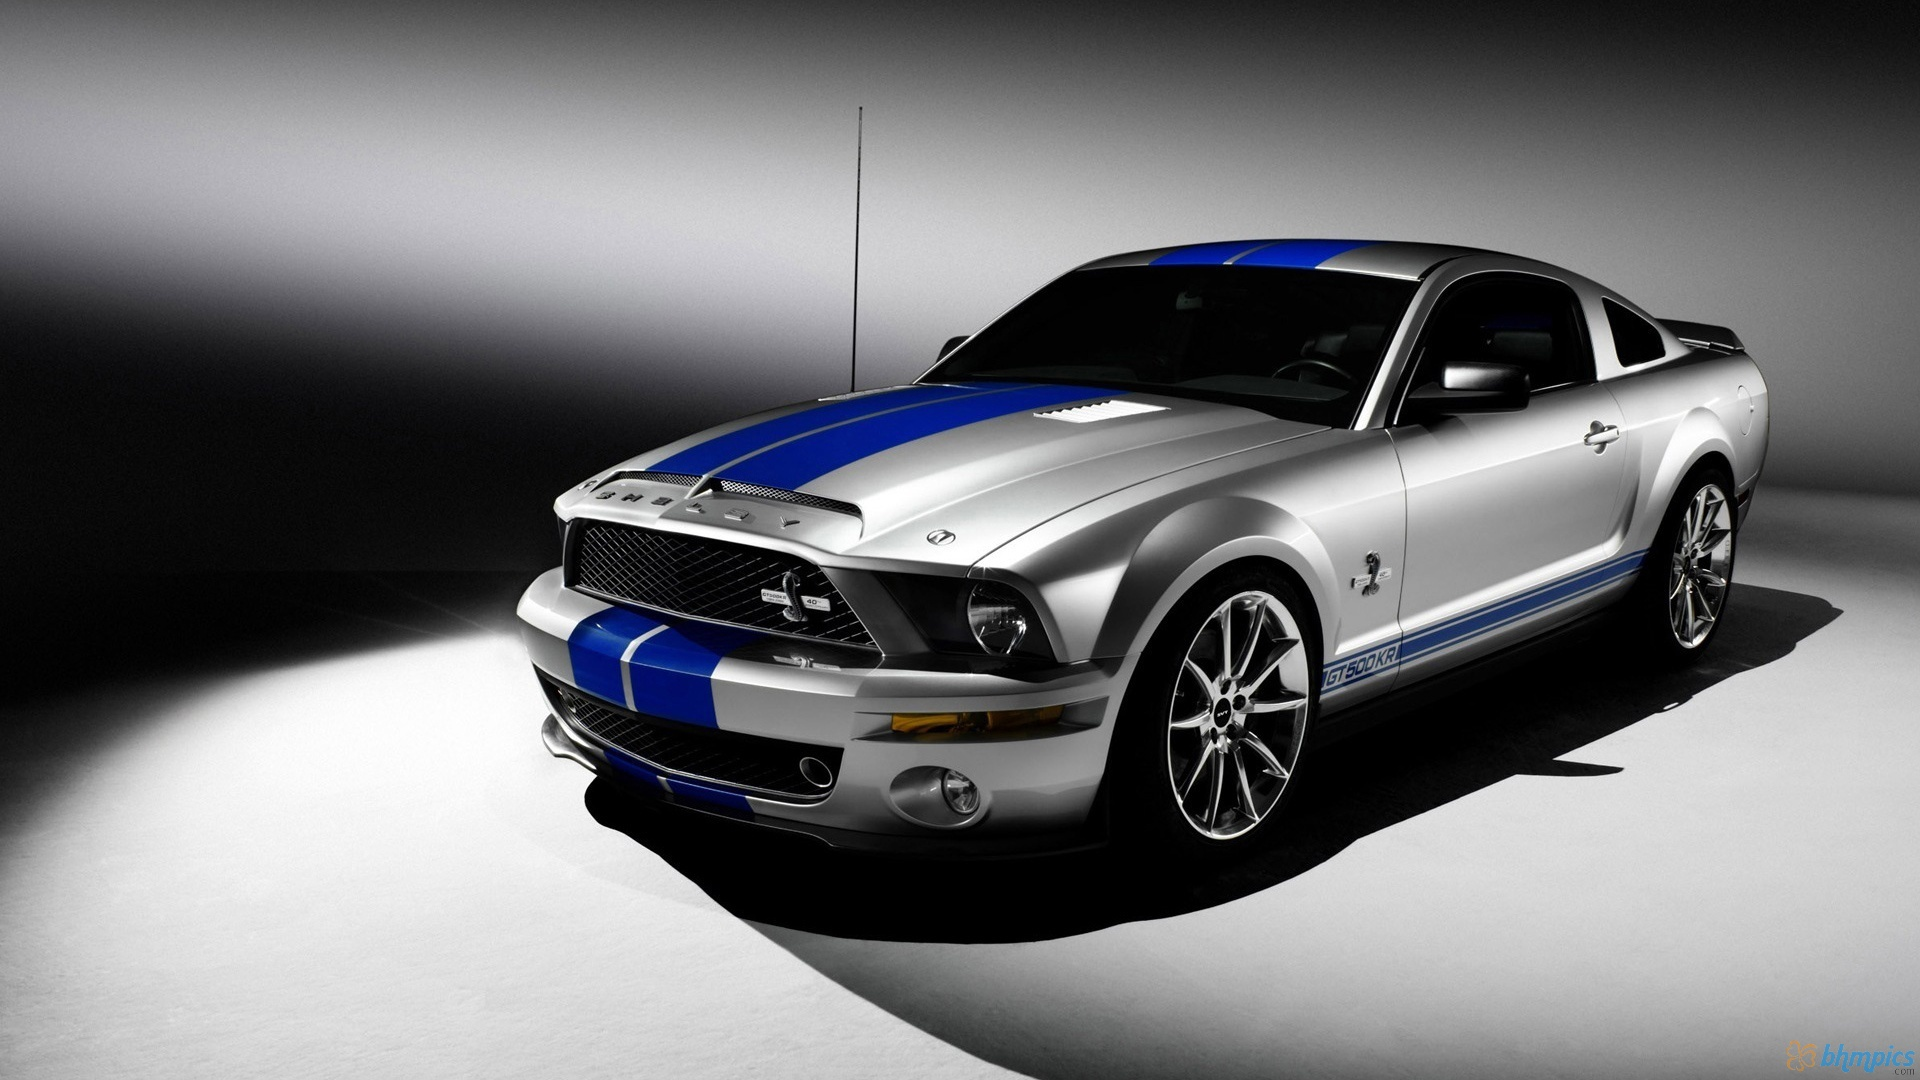 Cars Desktop Wallpaper Mustang GT HD Desktop Wallpaper 1920x1080